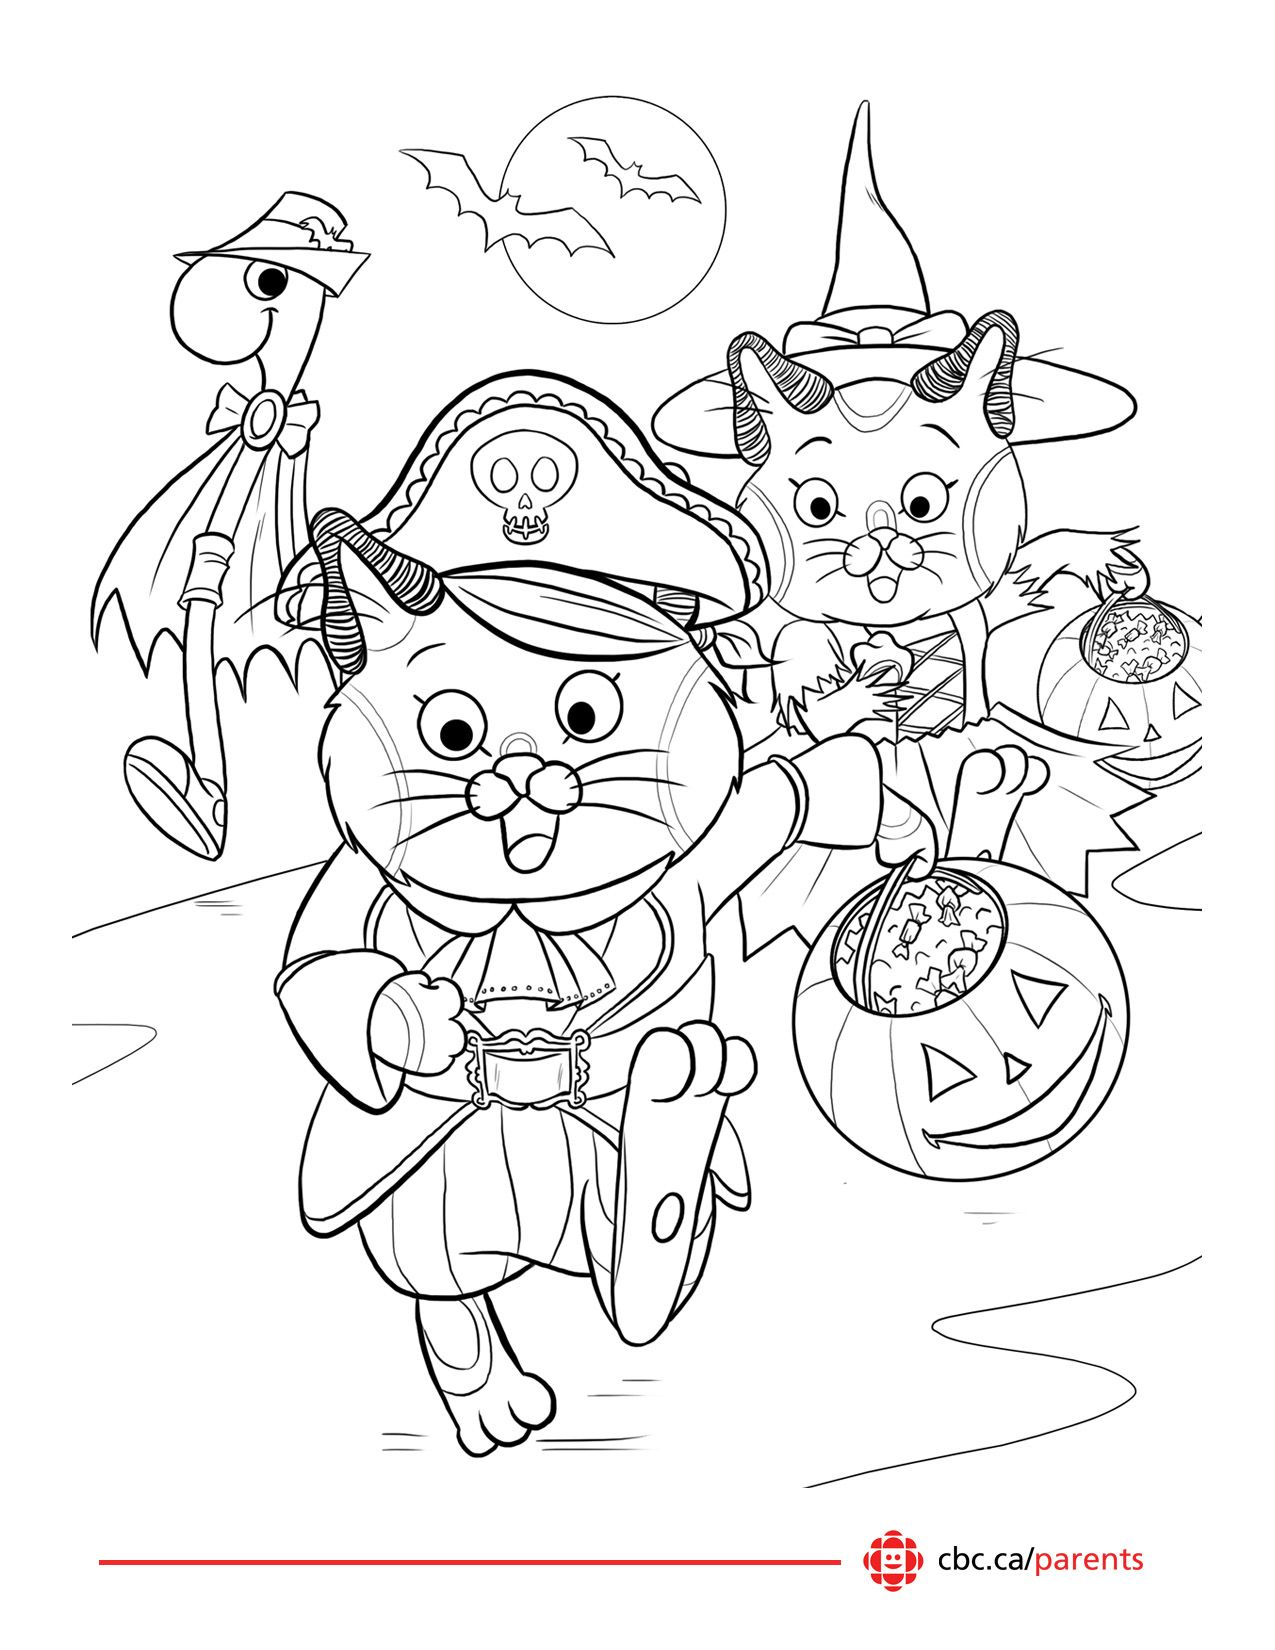 Printable Halloween Colouring Pages Halloween Ideas